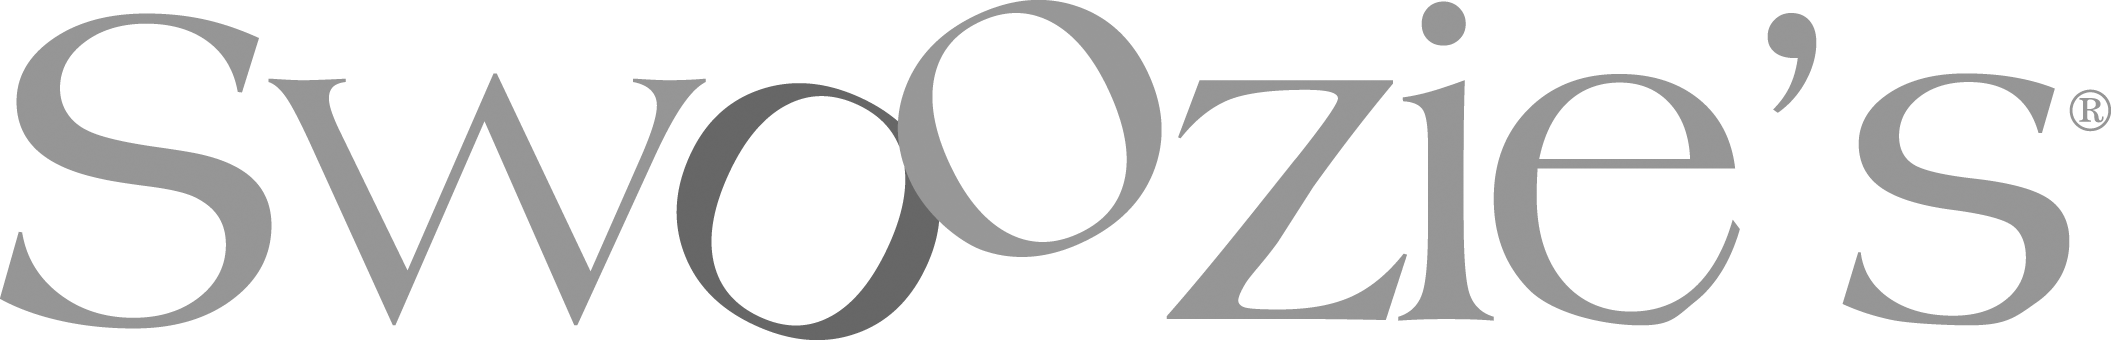 Swoozies_Logo_bw.png